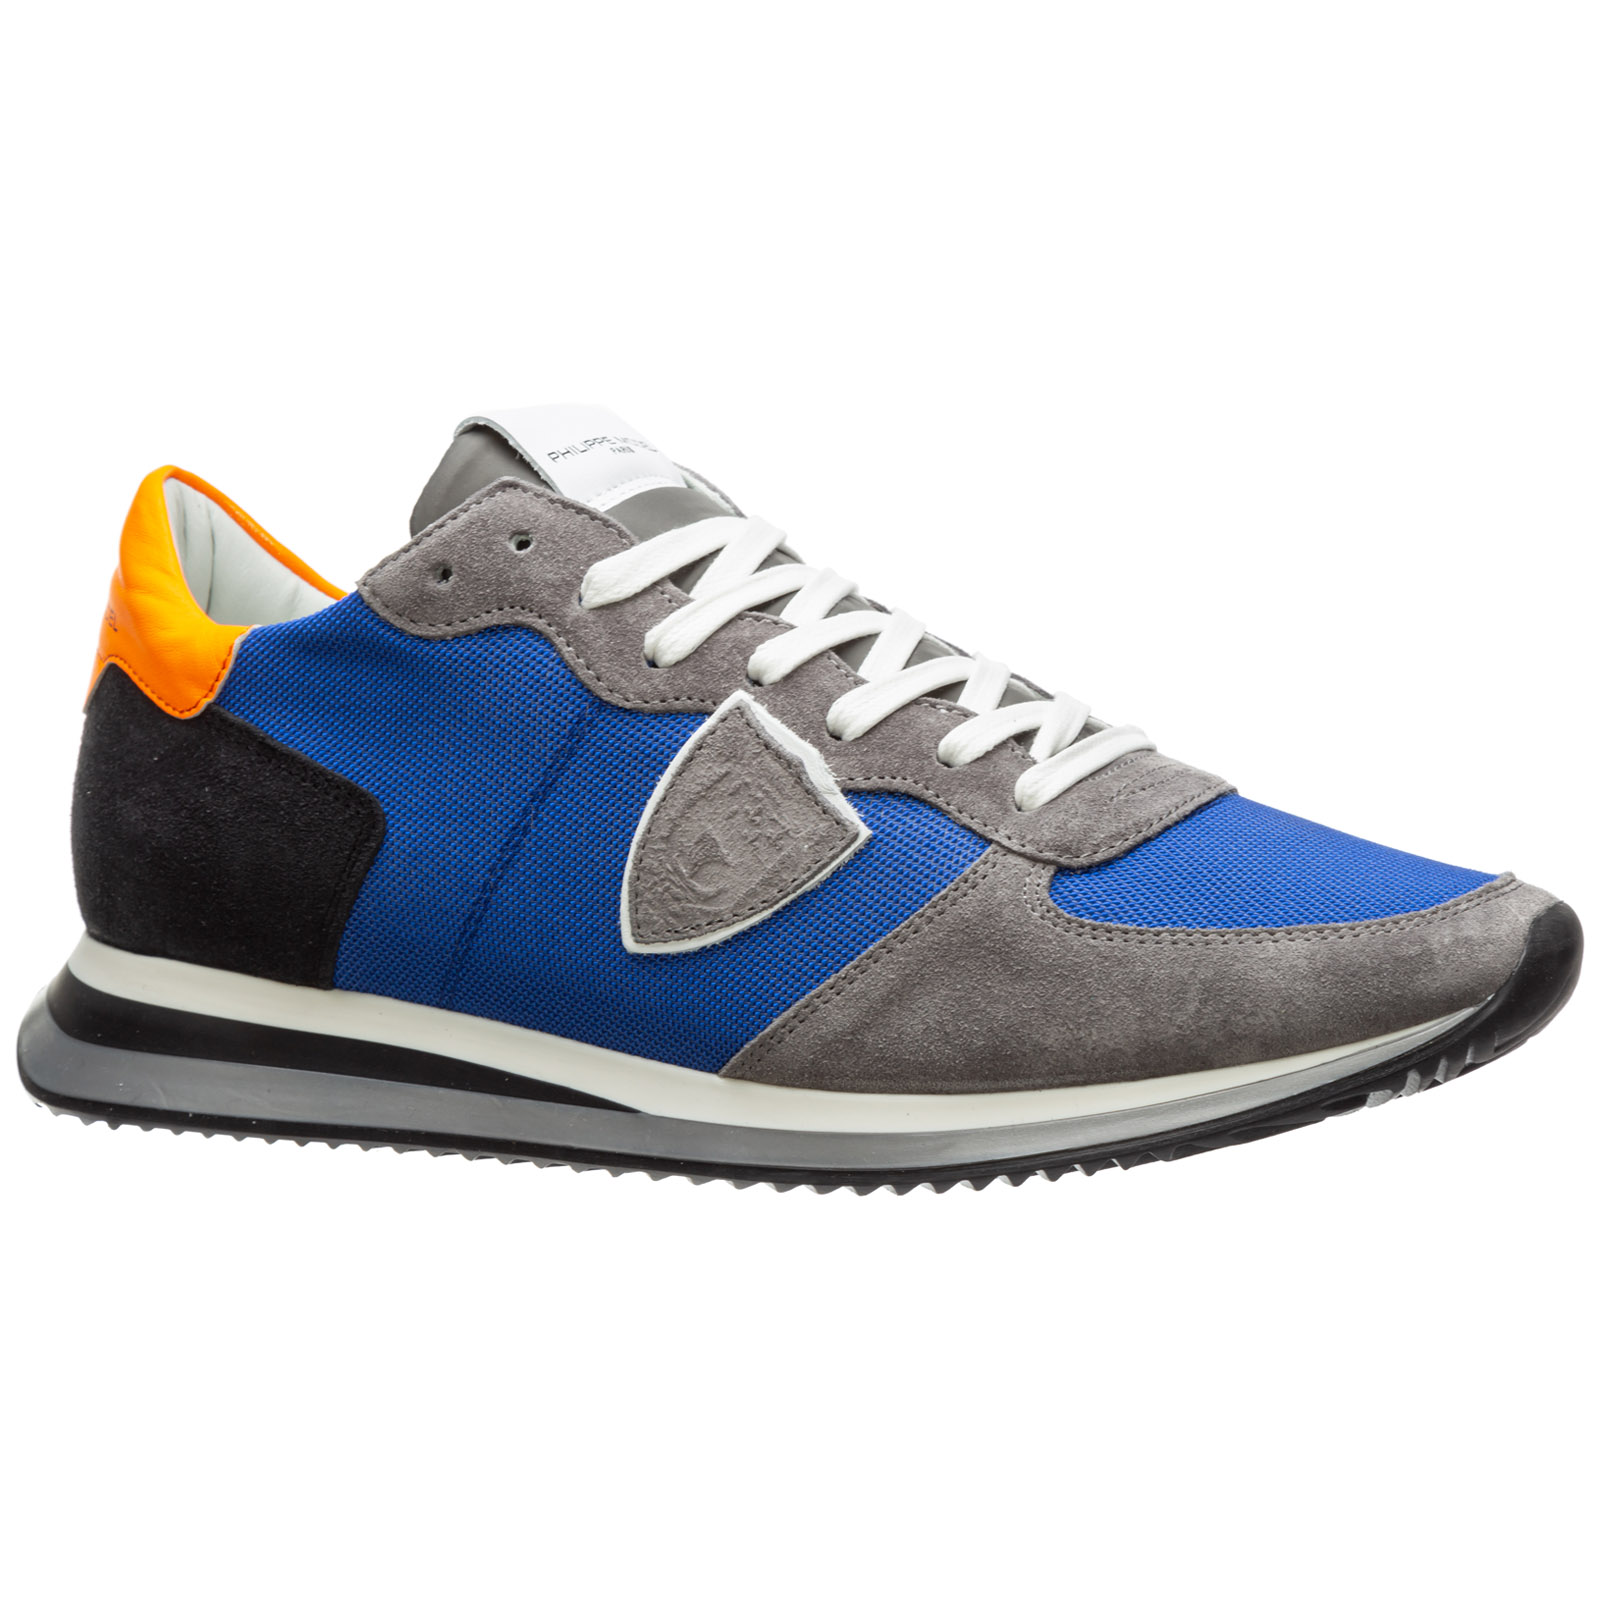 Men's shoes leather trainers sneakers tropez